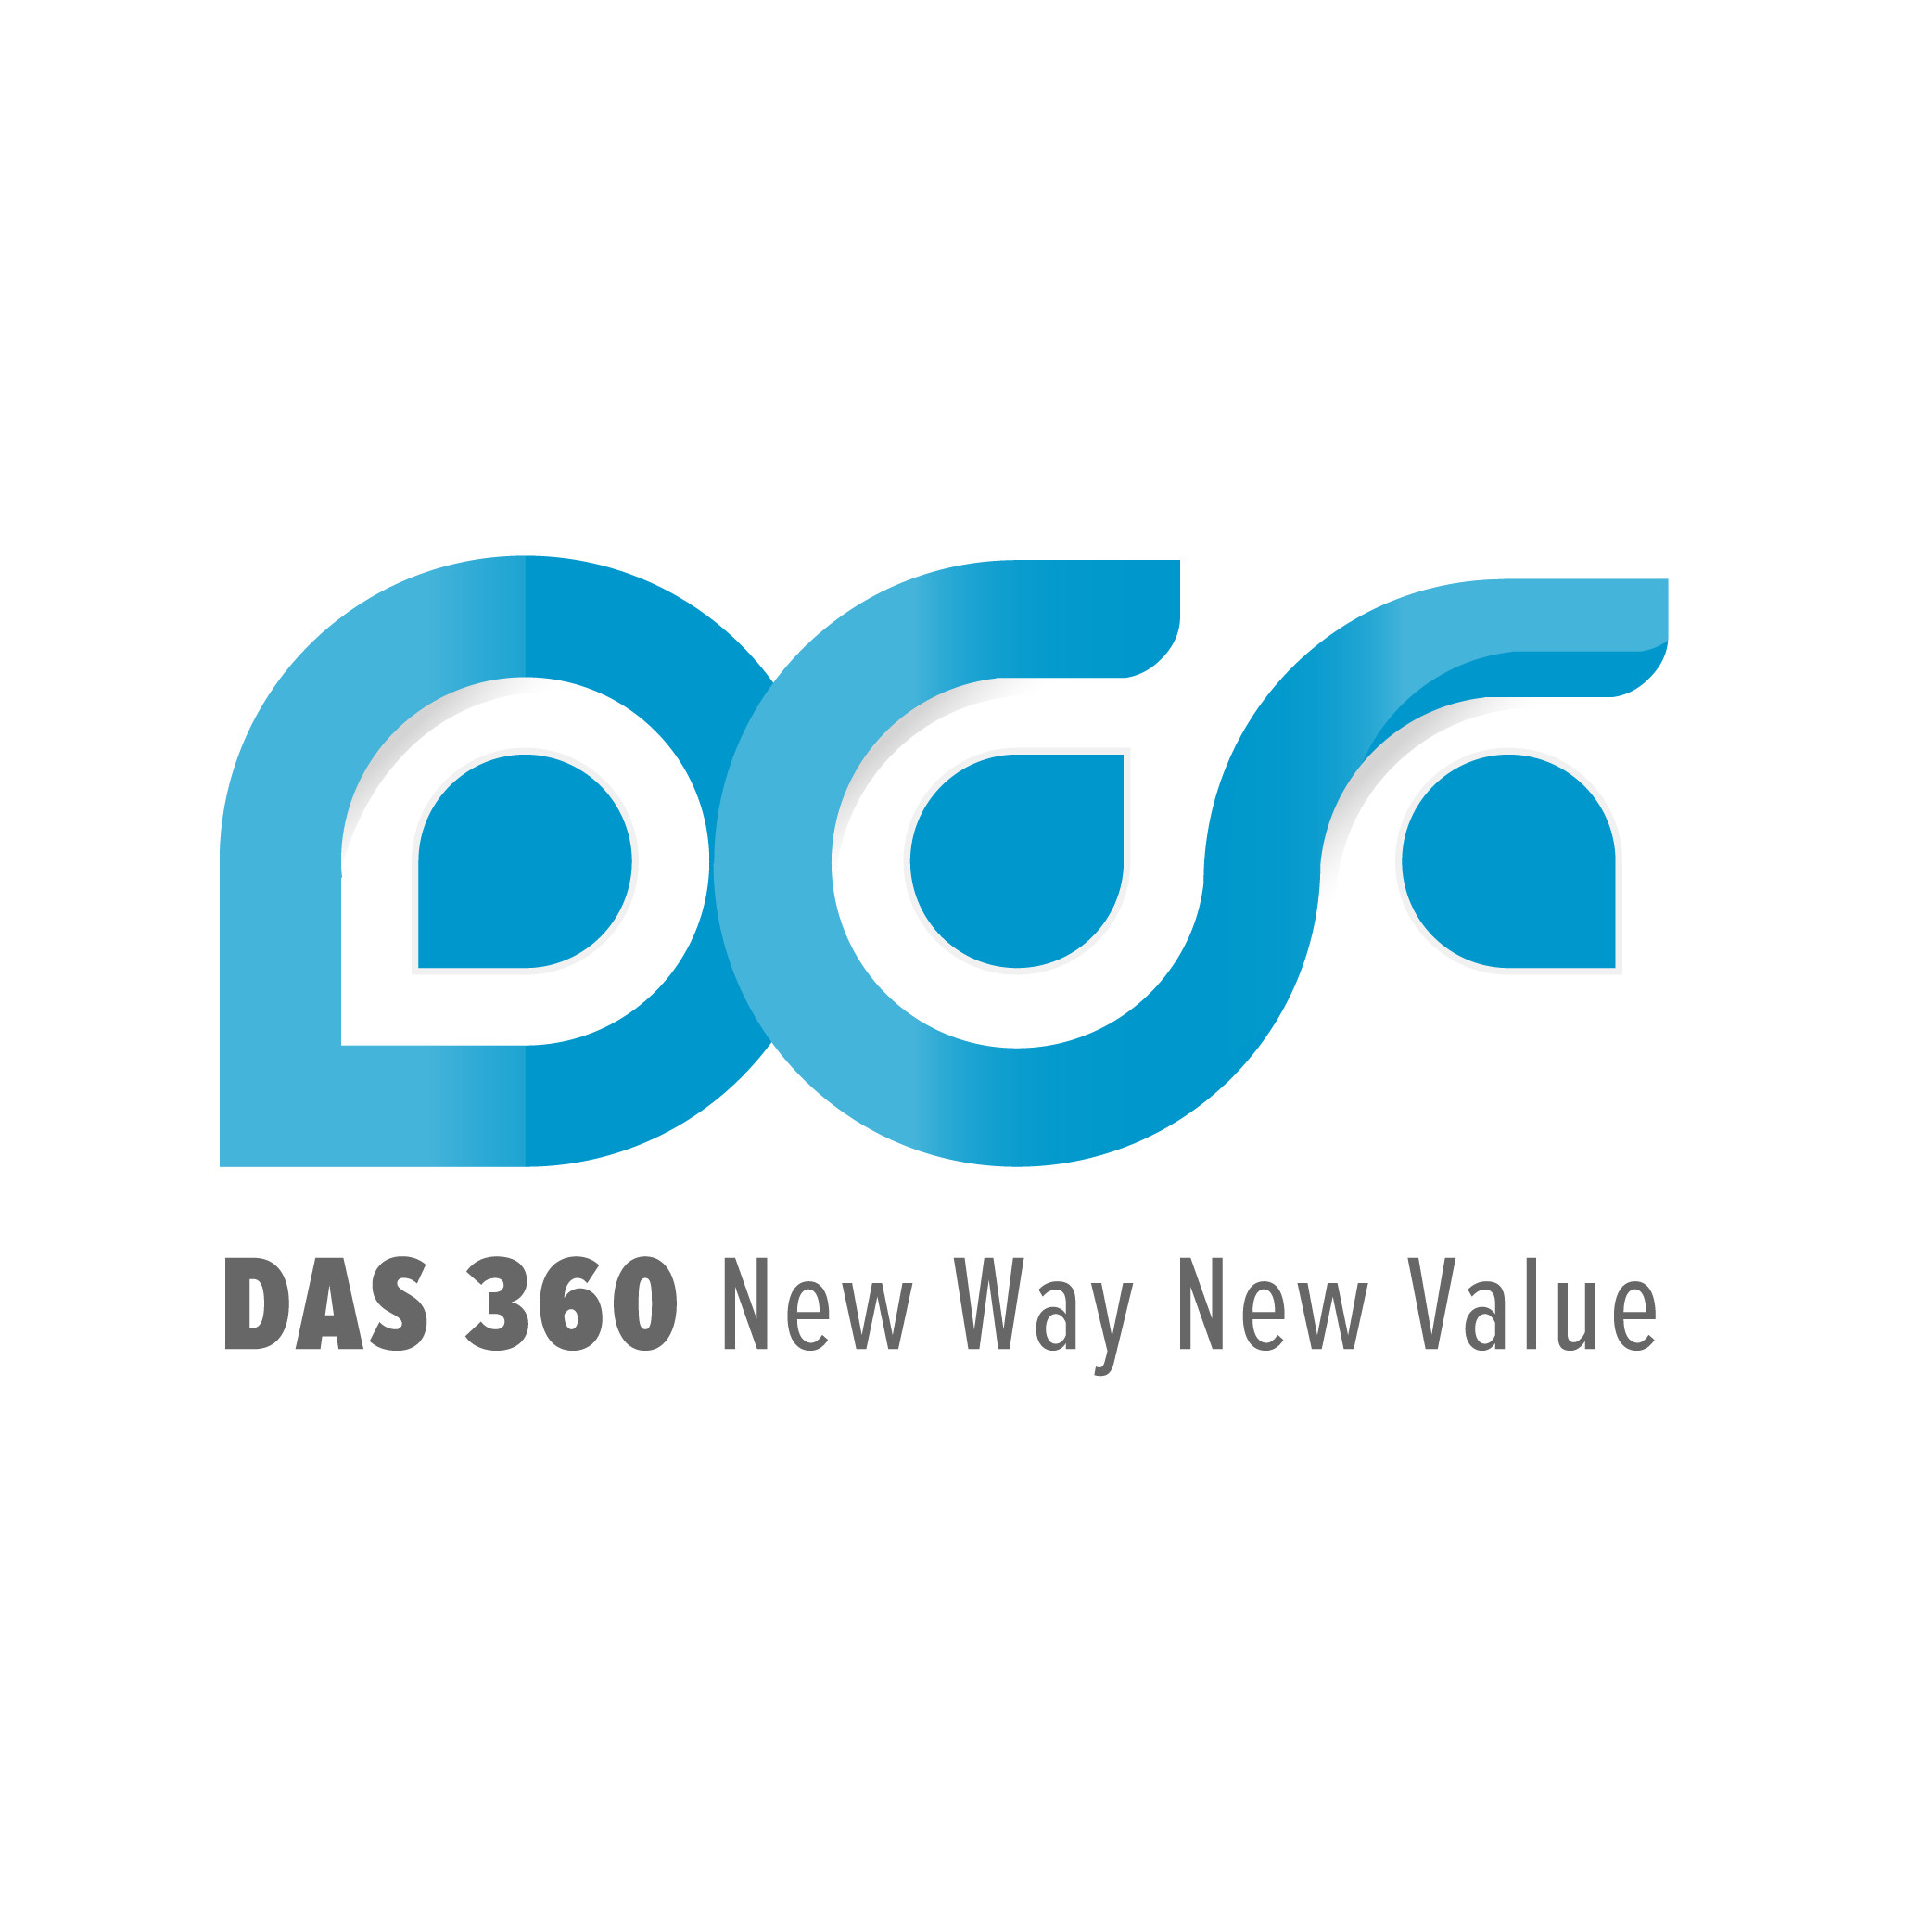 DAS 360 Digital Advertising Solutions